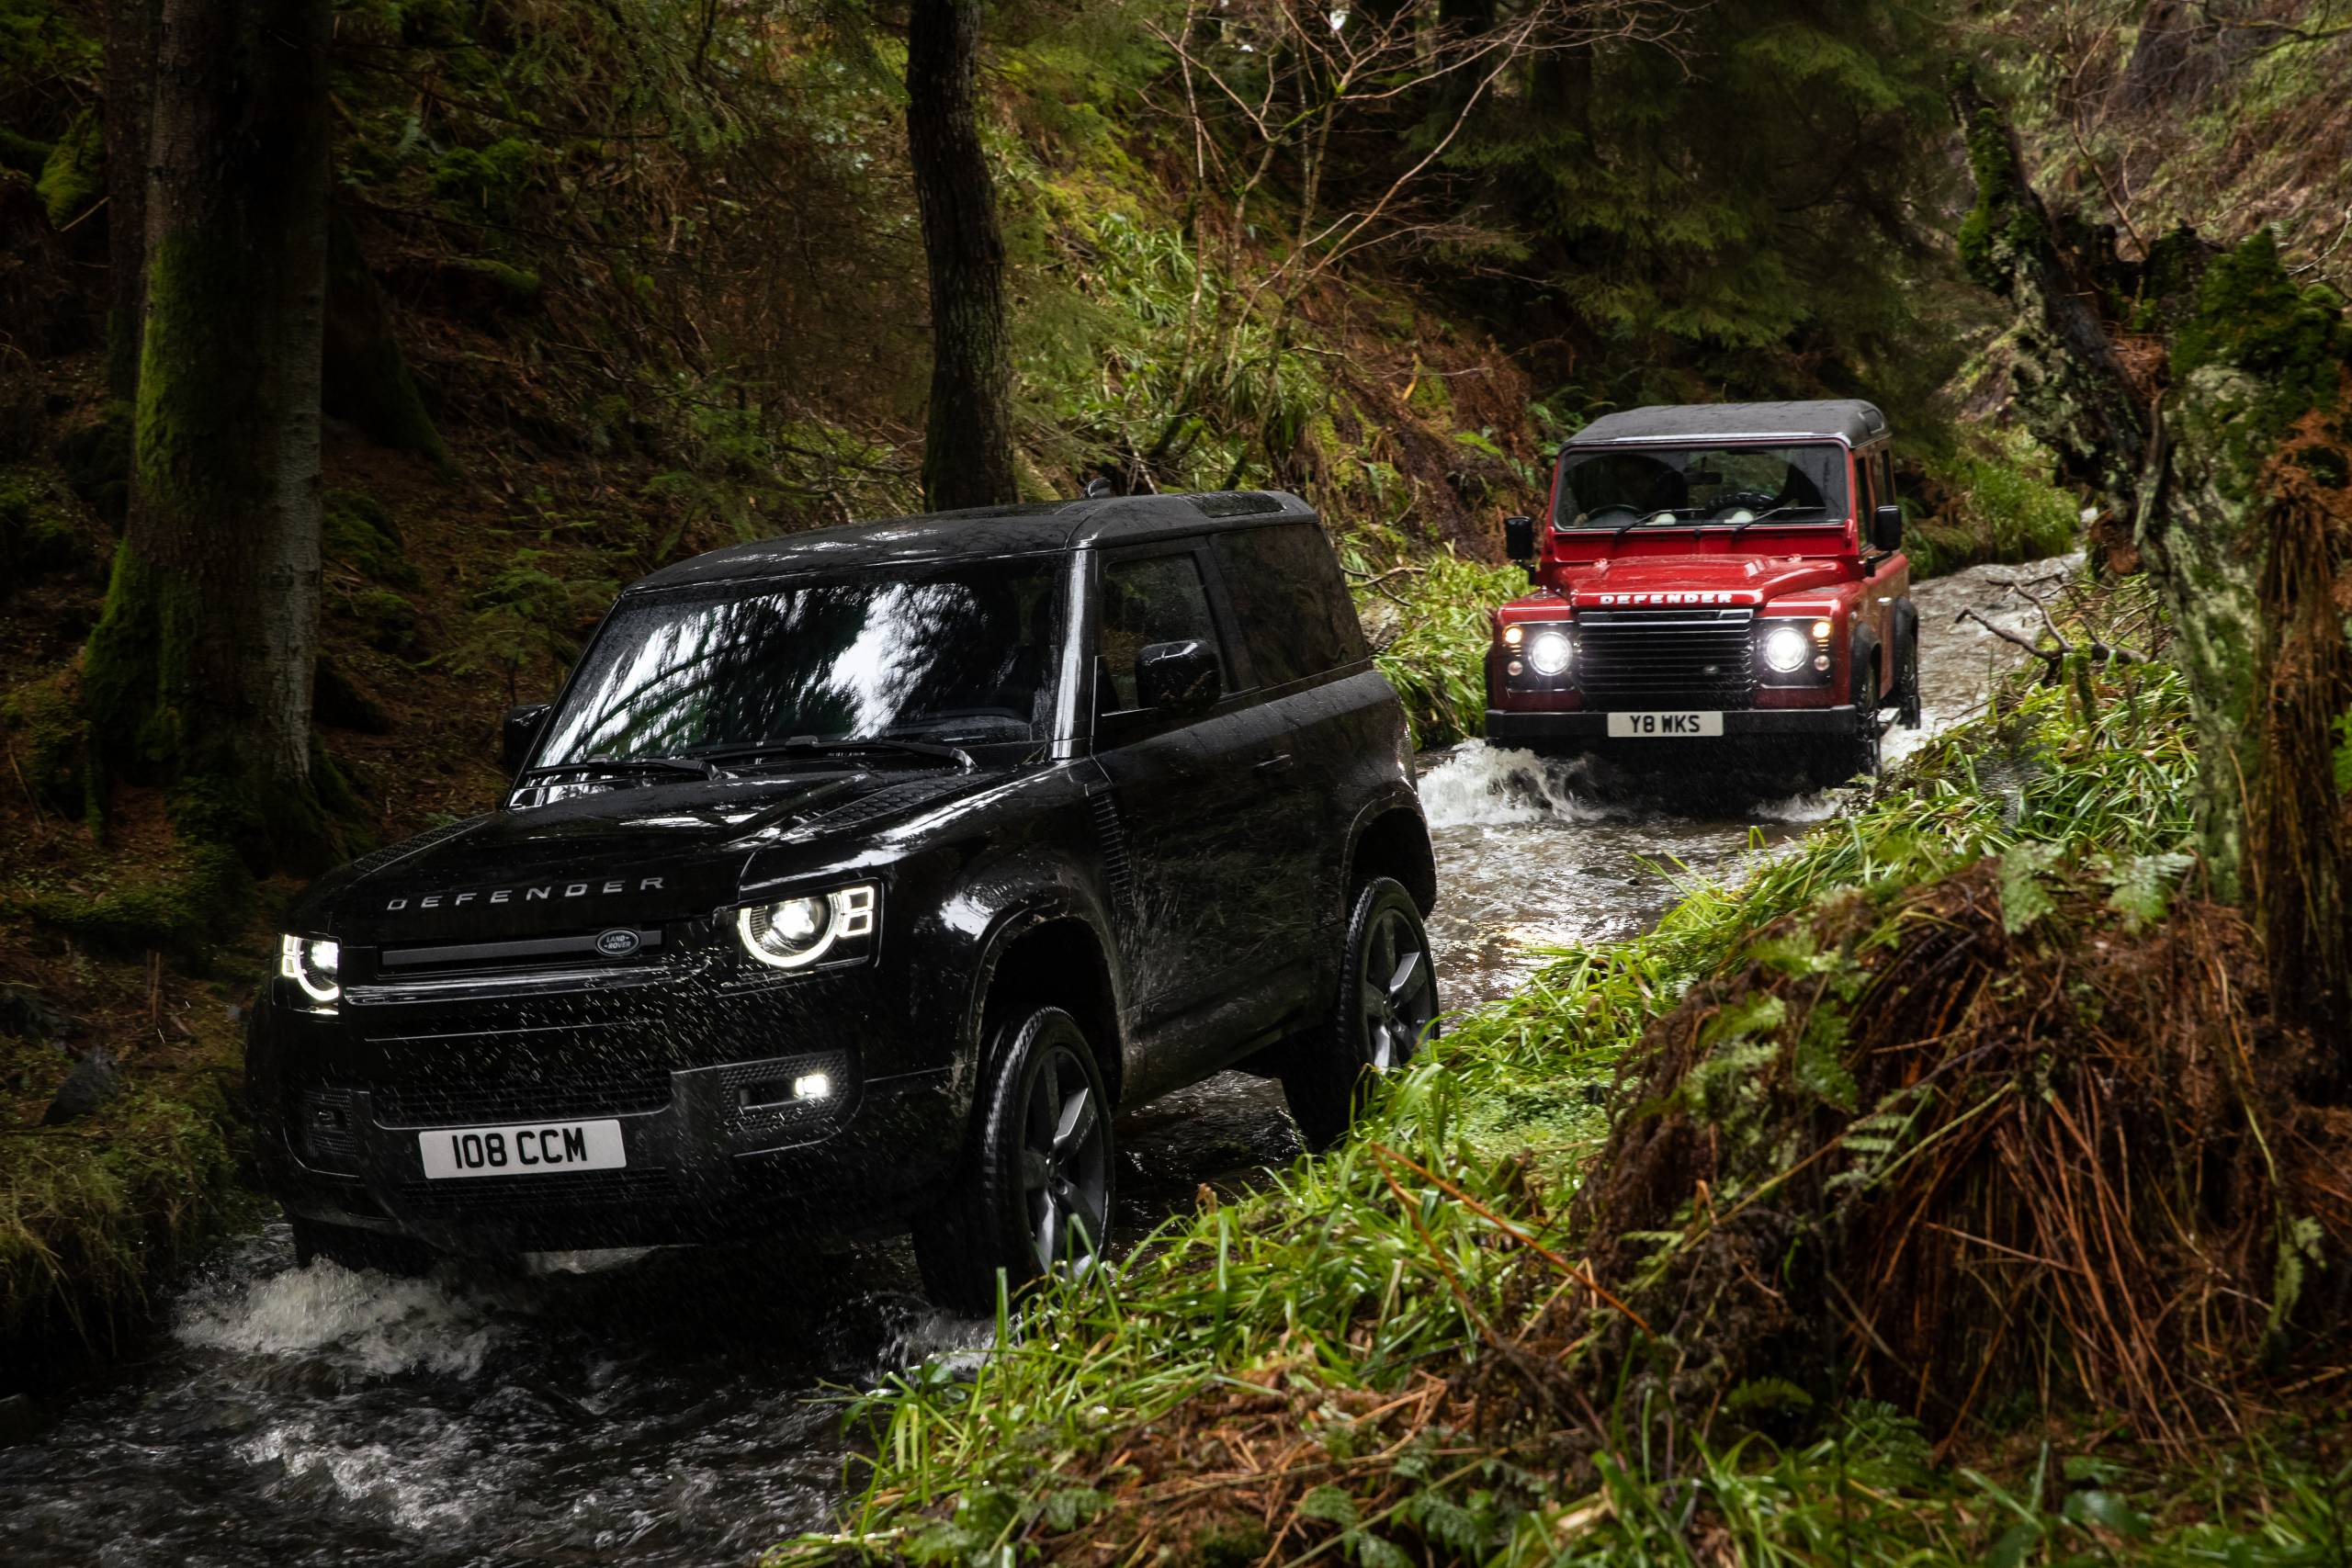 2022 Land Rover Defender 90 and classic Defender in creek bed